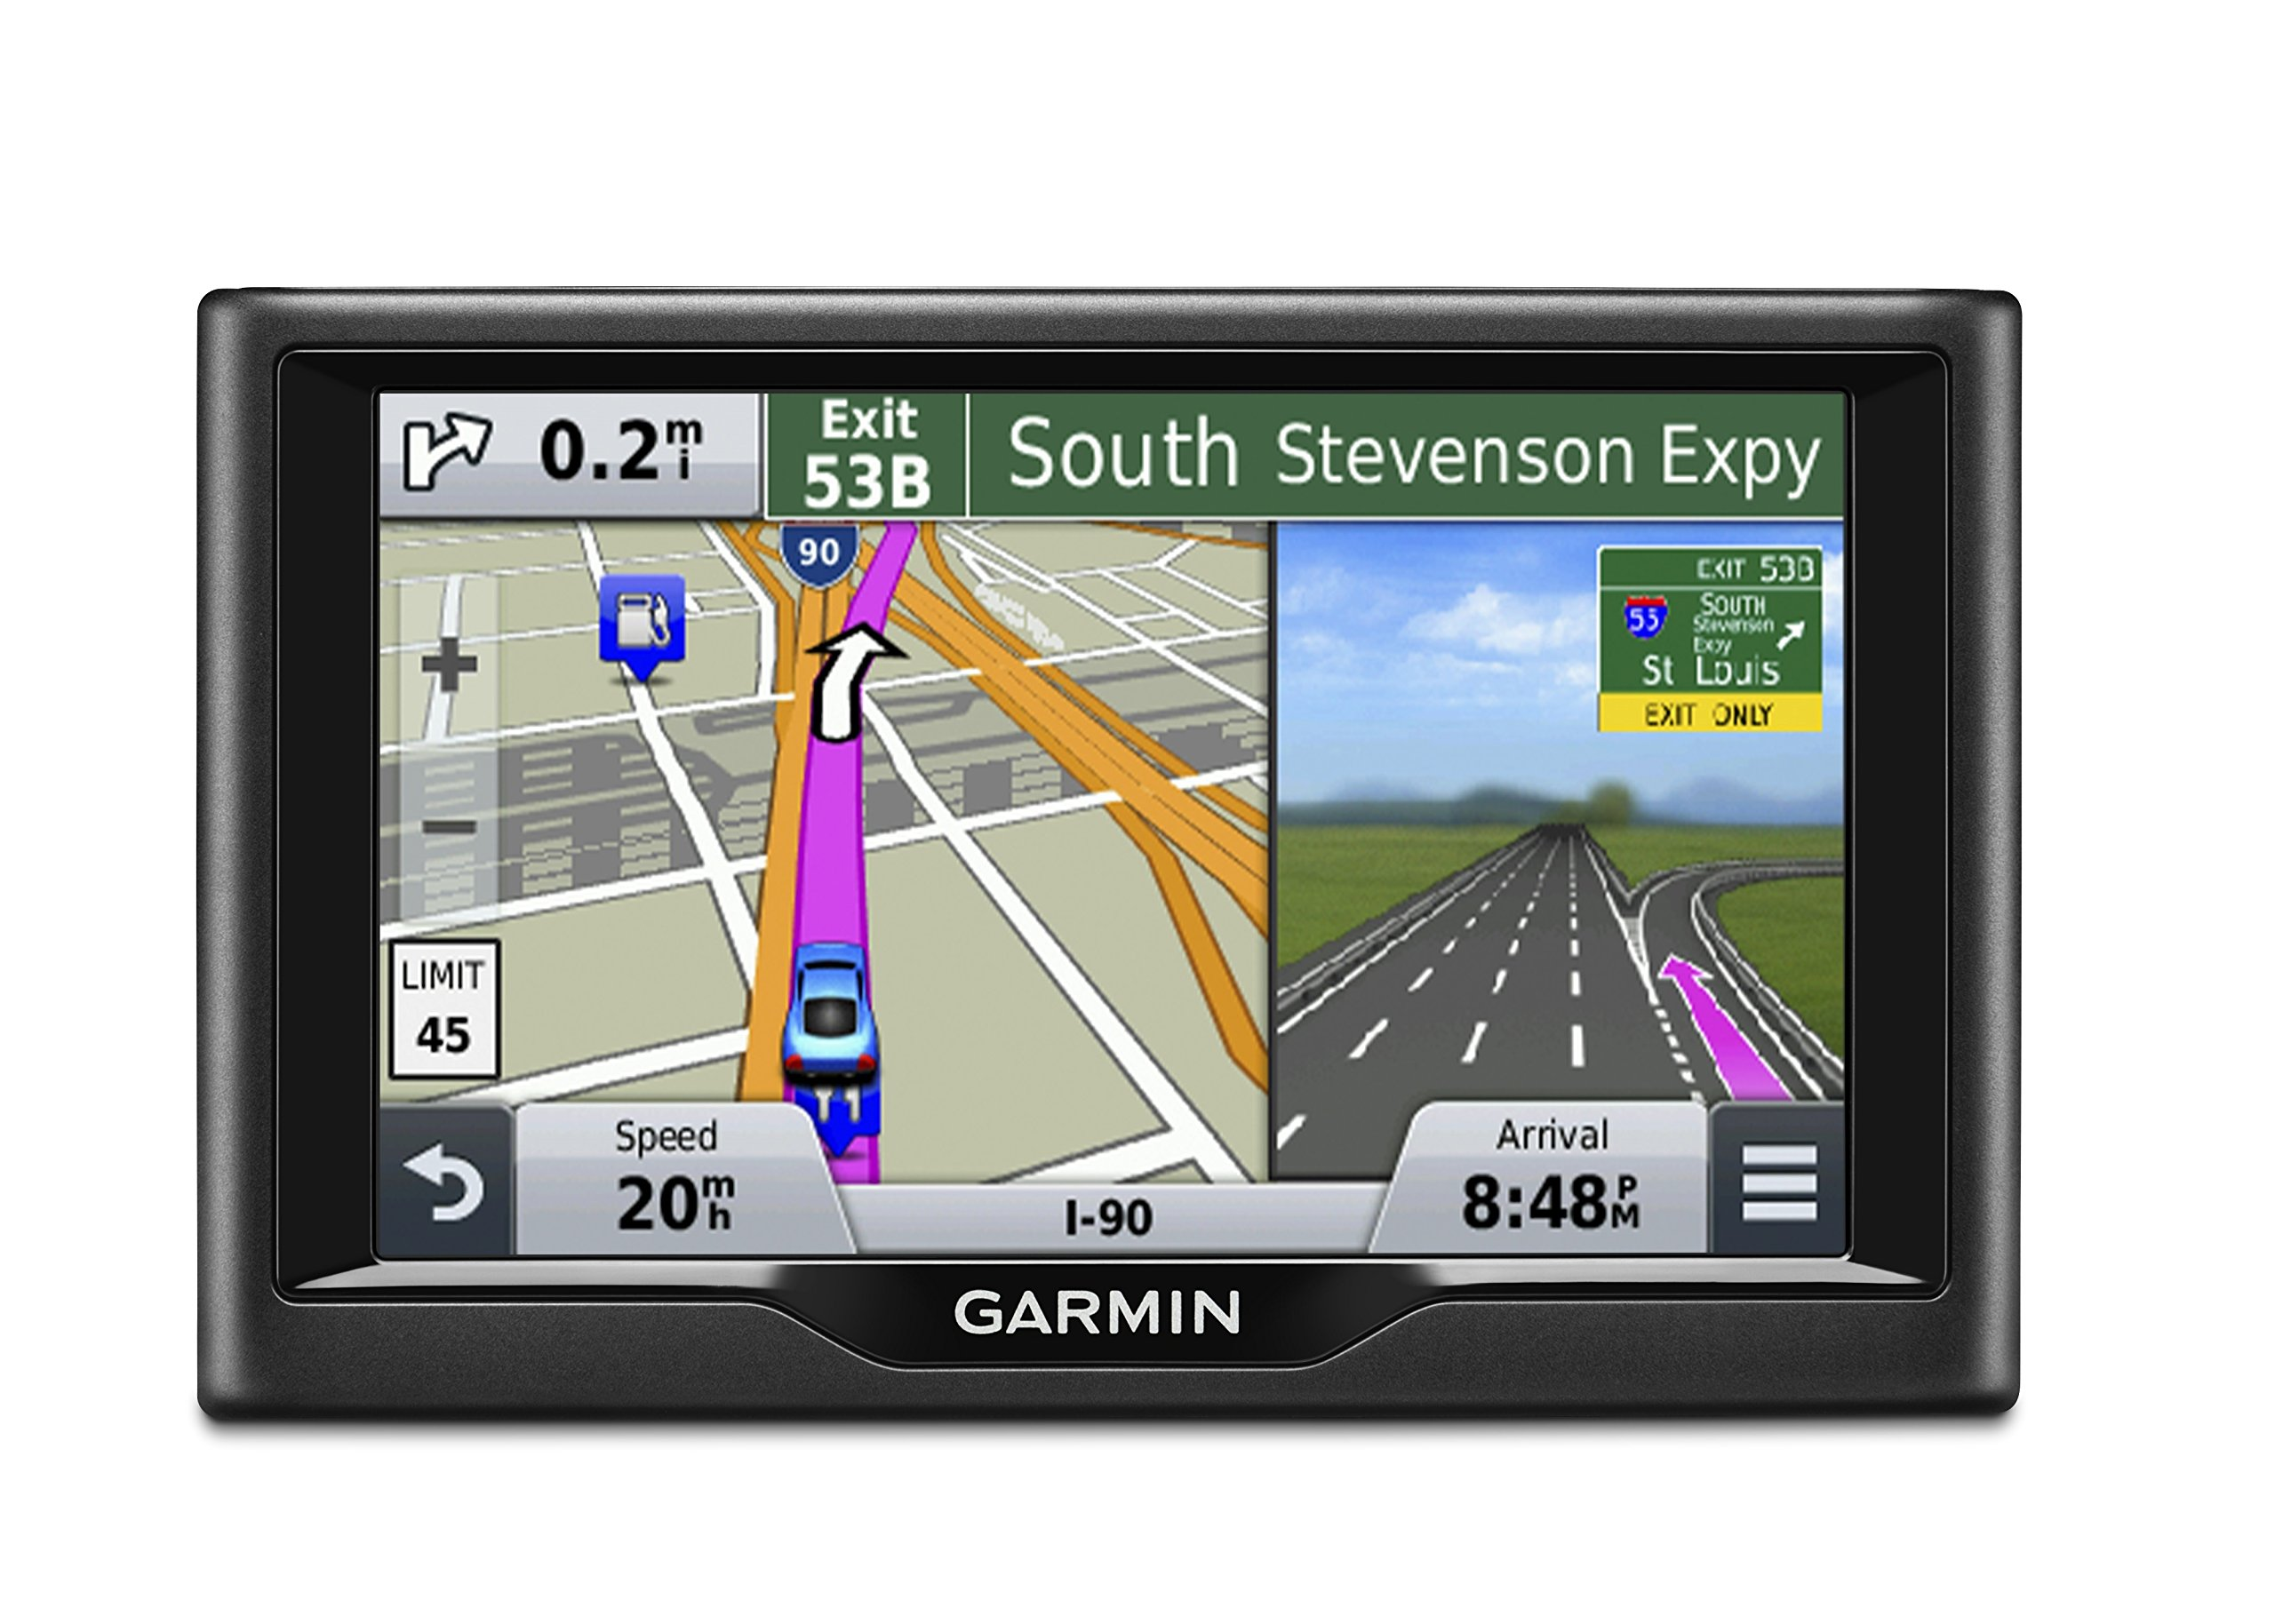 Garmin Nuvi 57LM GPS Navigator System with Spoken Turn-By-Turn Directions,5 inch display, Lifetime Map Updates, Direct Access, and Speed Limit Displays by Garmin